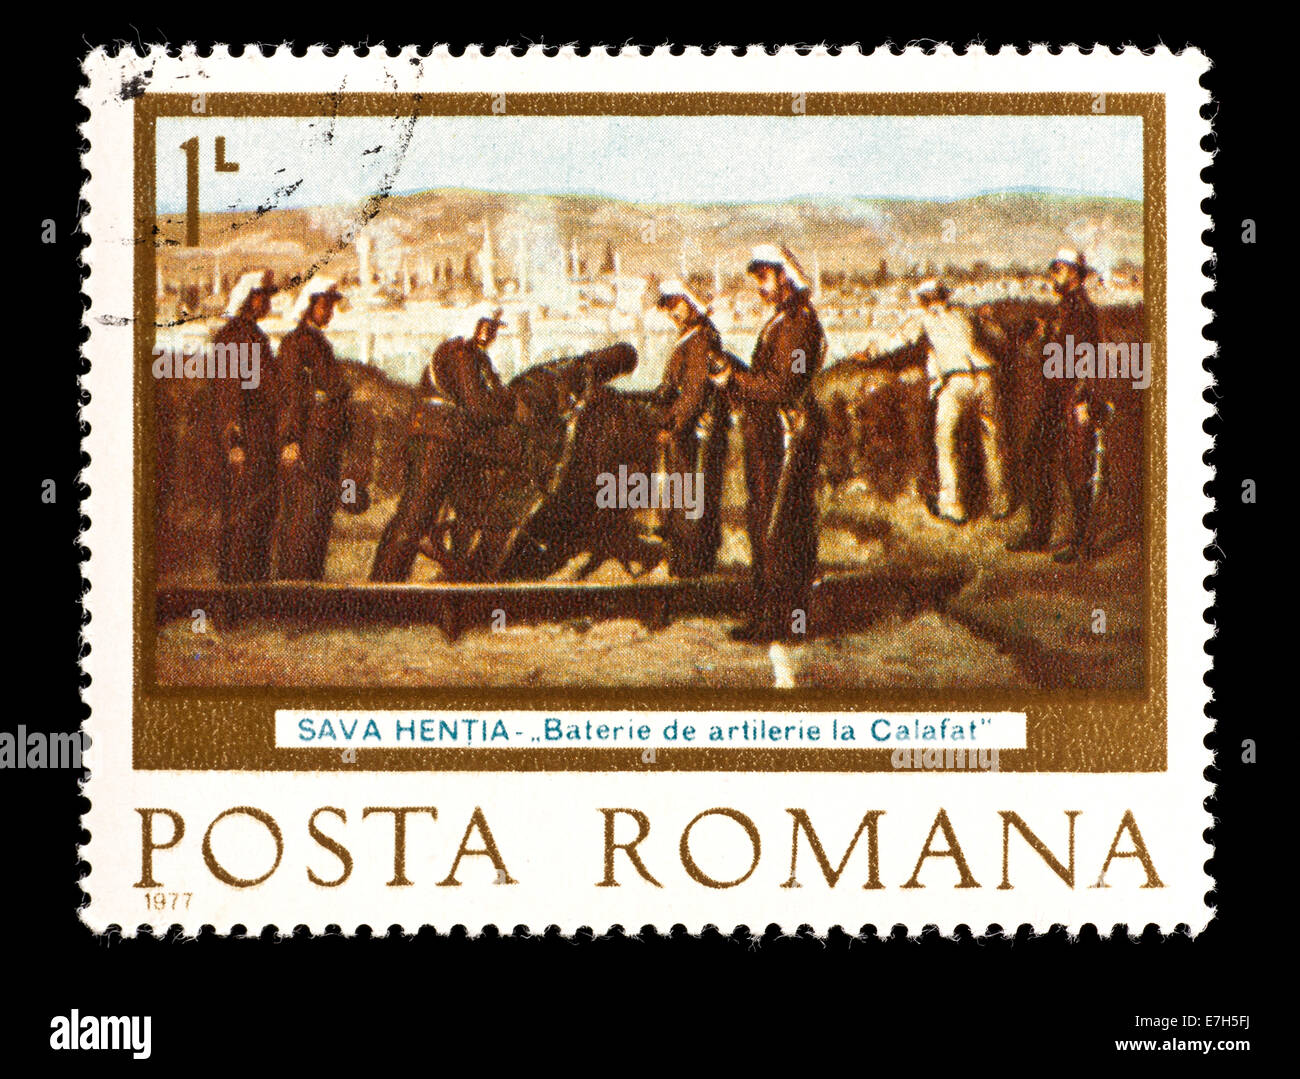 Hentia Pics throughout postage stamp from romania depicting the sava hentia painting